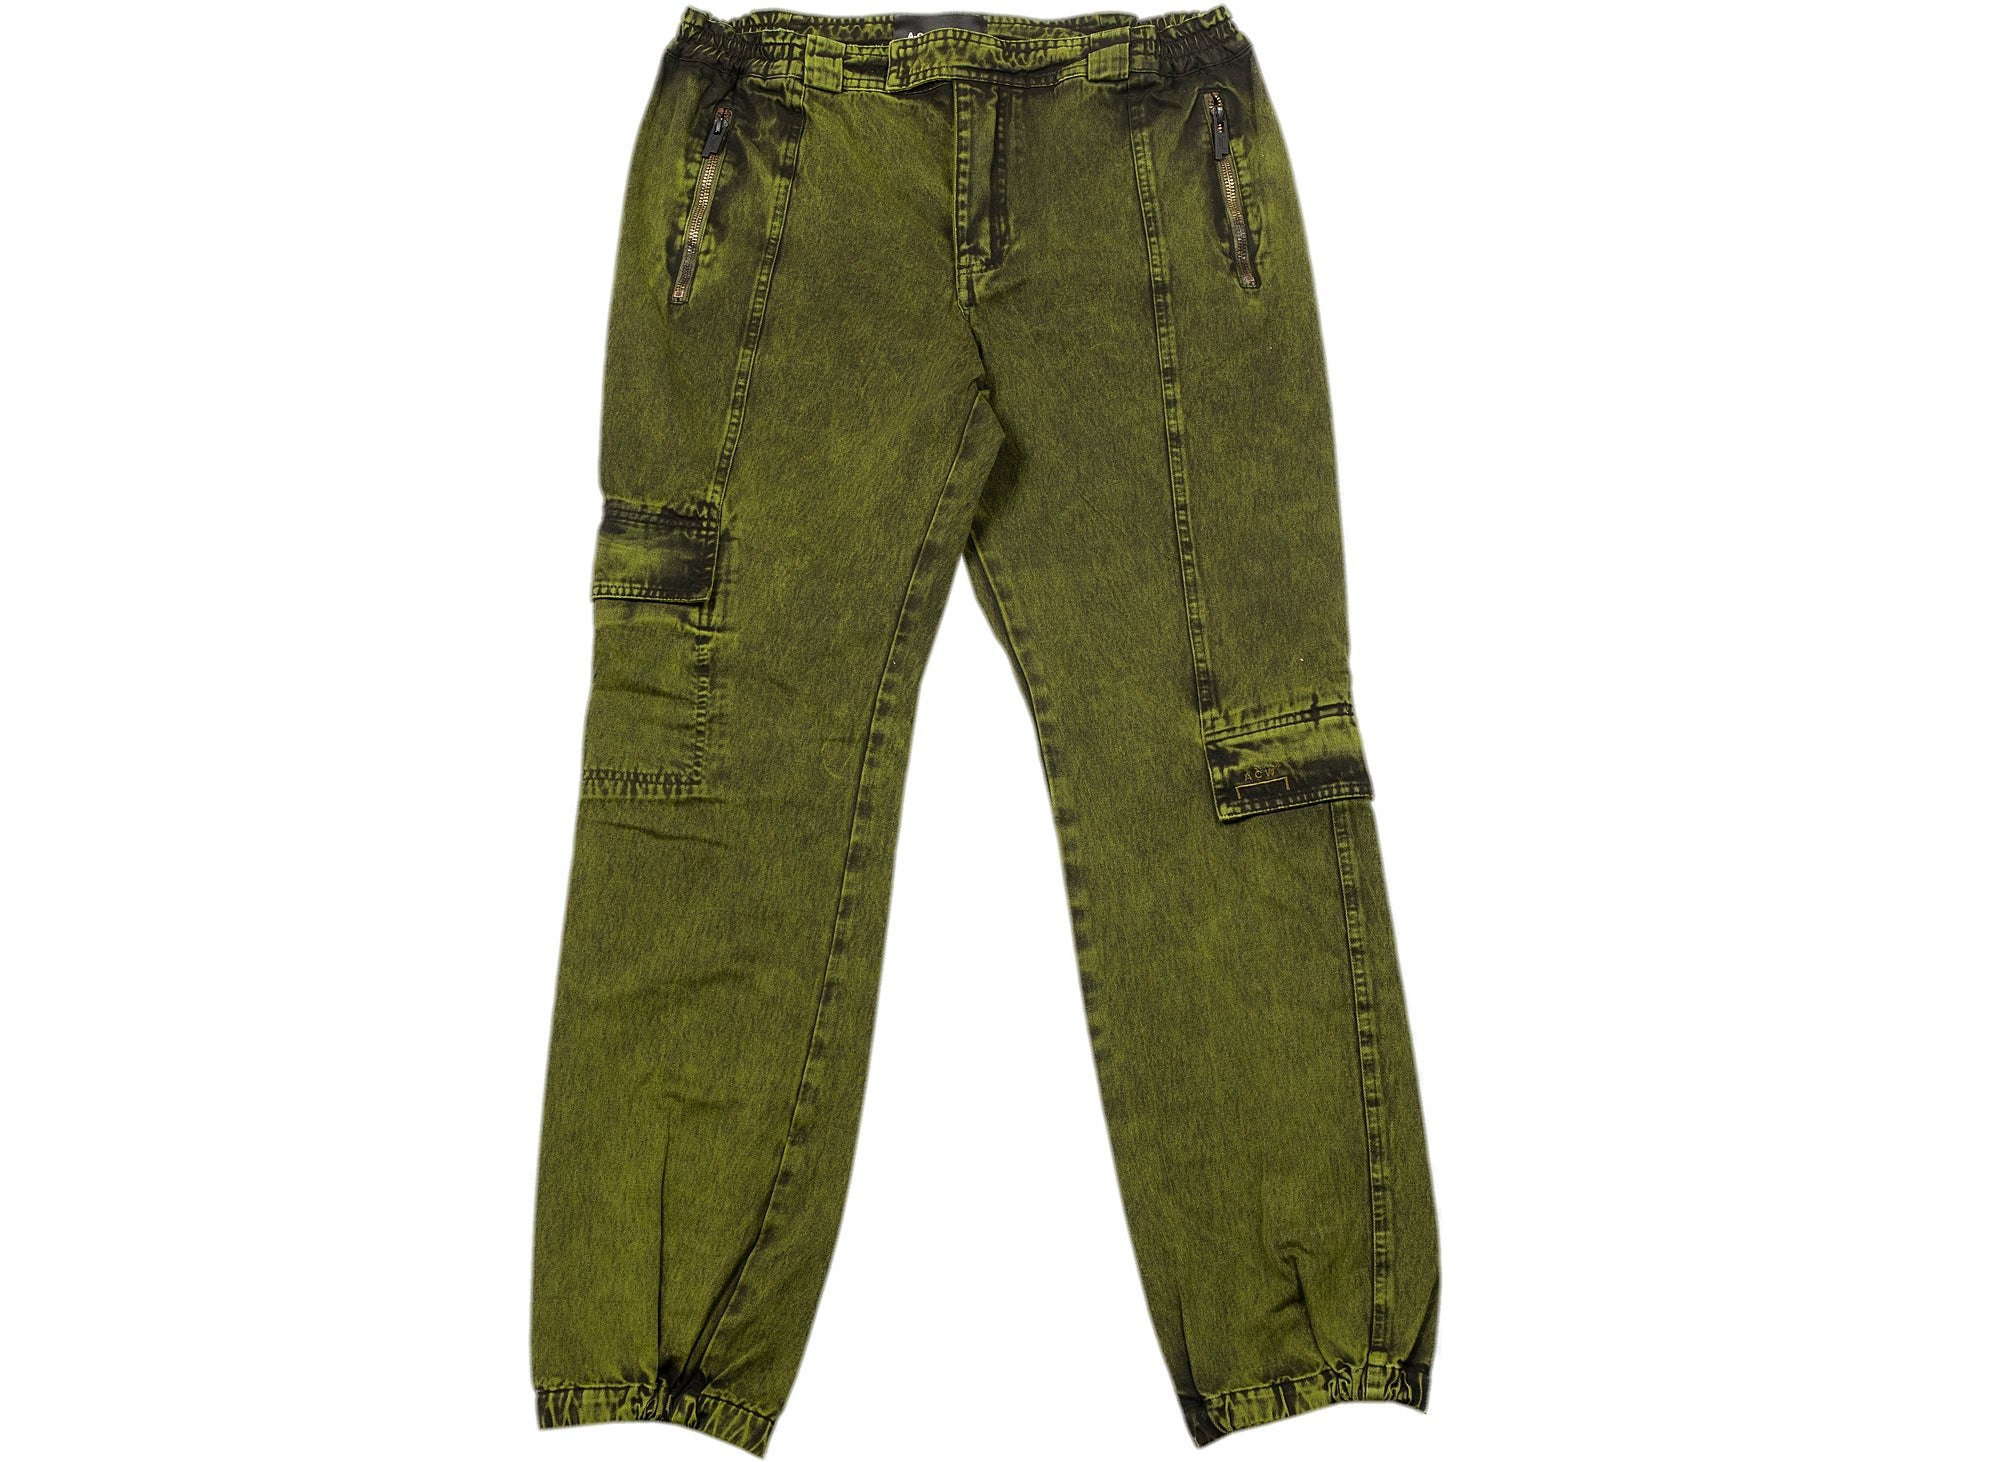 A-COLD-WALL* Memory Cargo Pants in Military Green xld